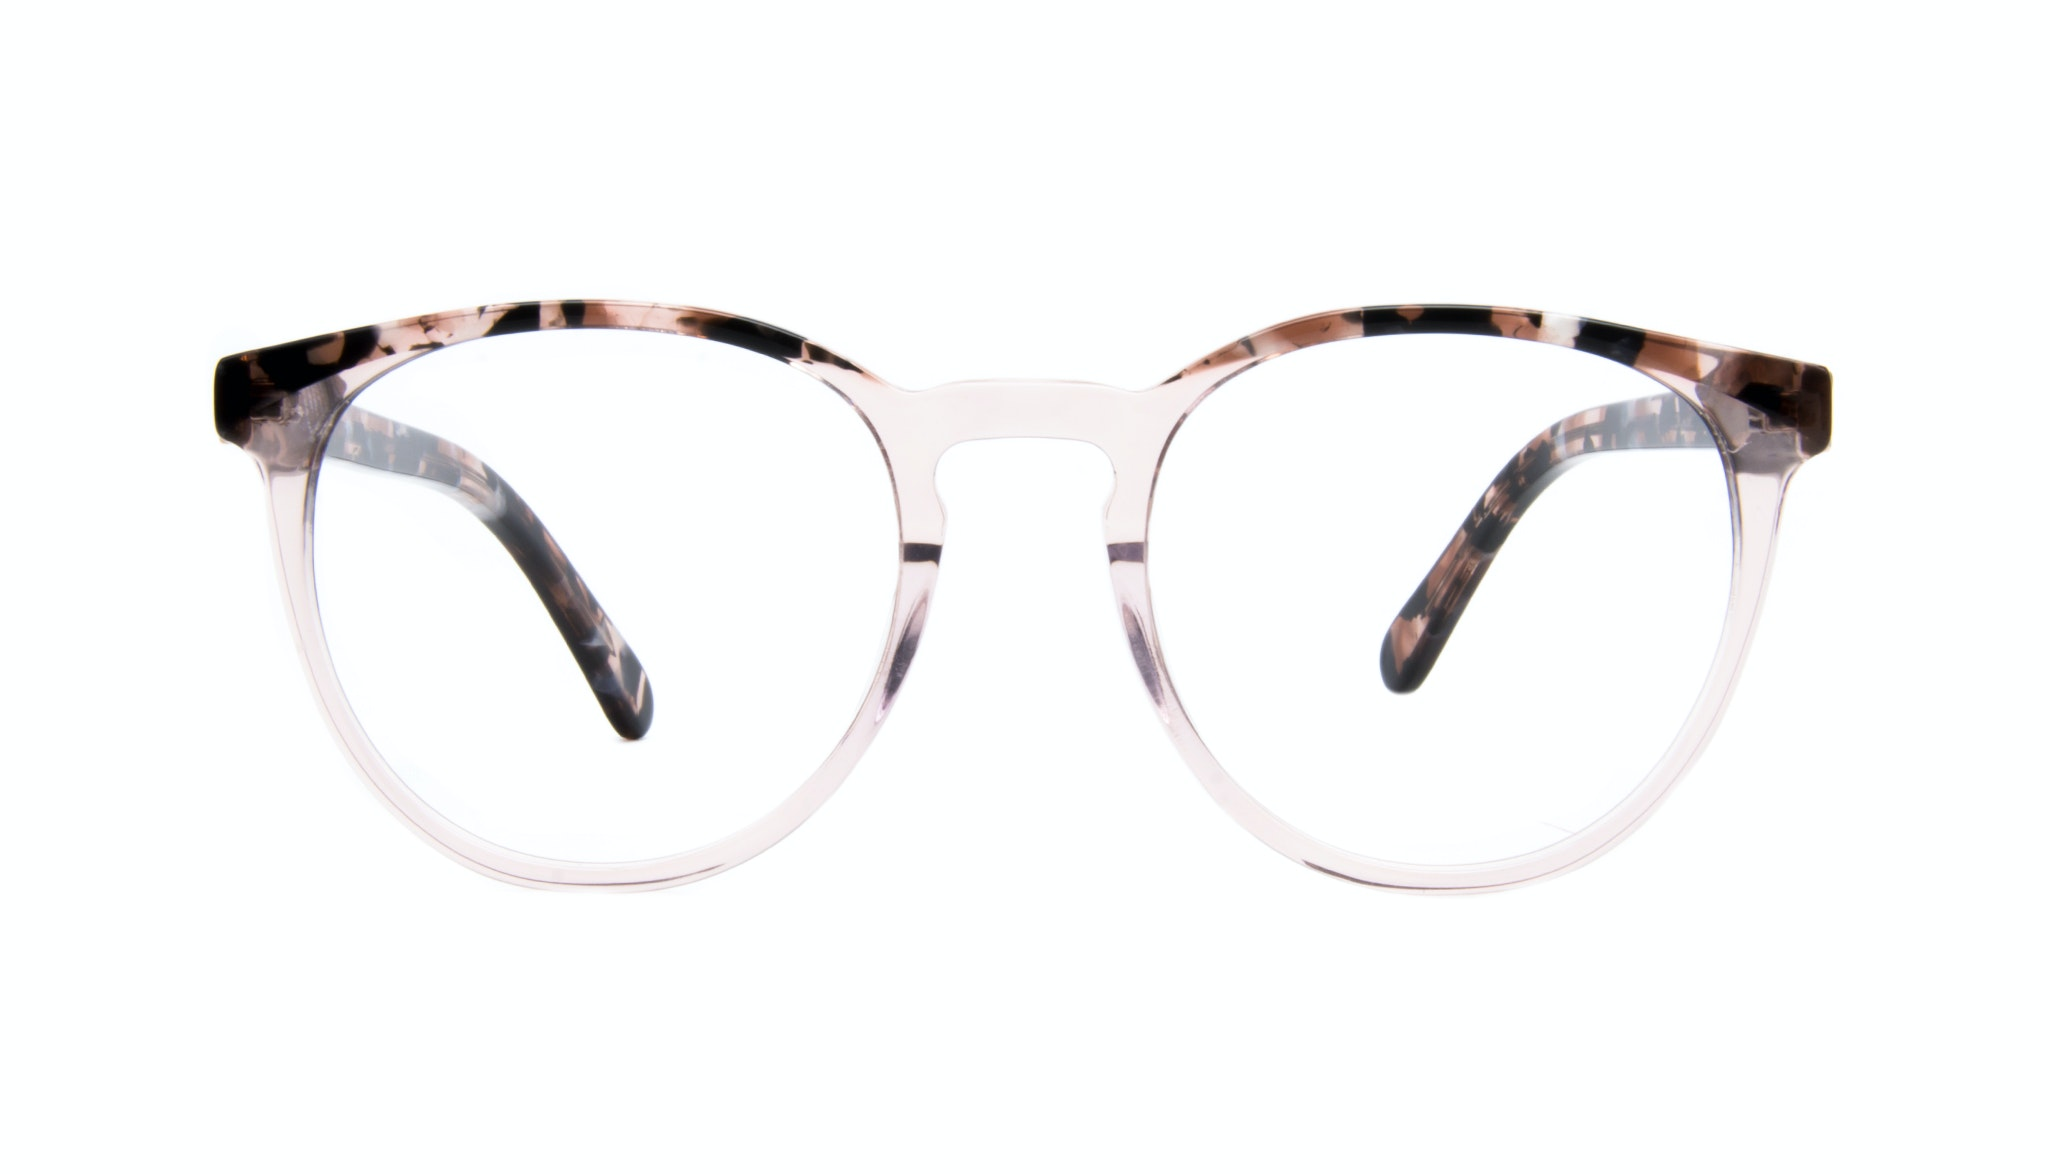 Affordable Fashion Glasses Round Eyeglasses Women Brilliant Rose Tort